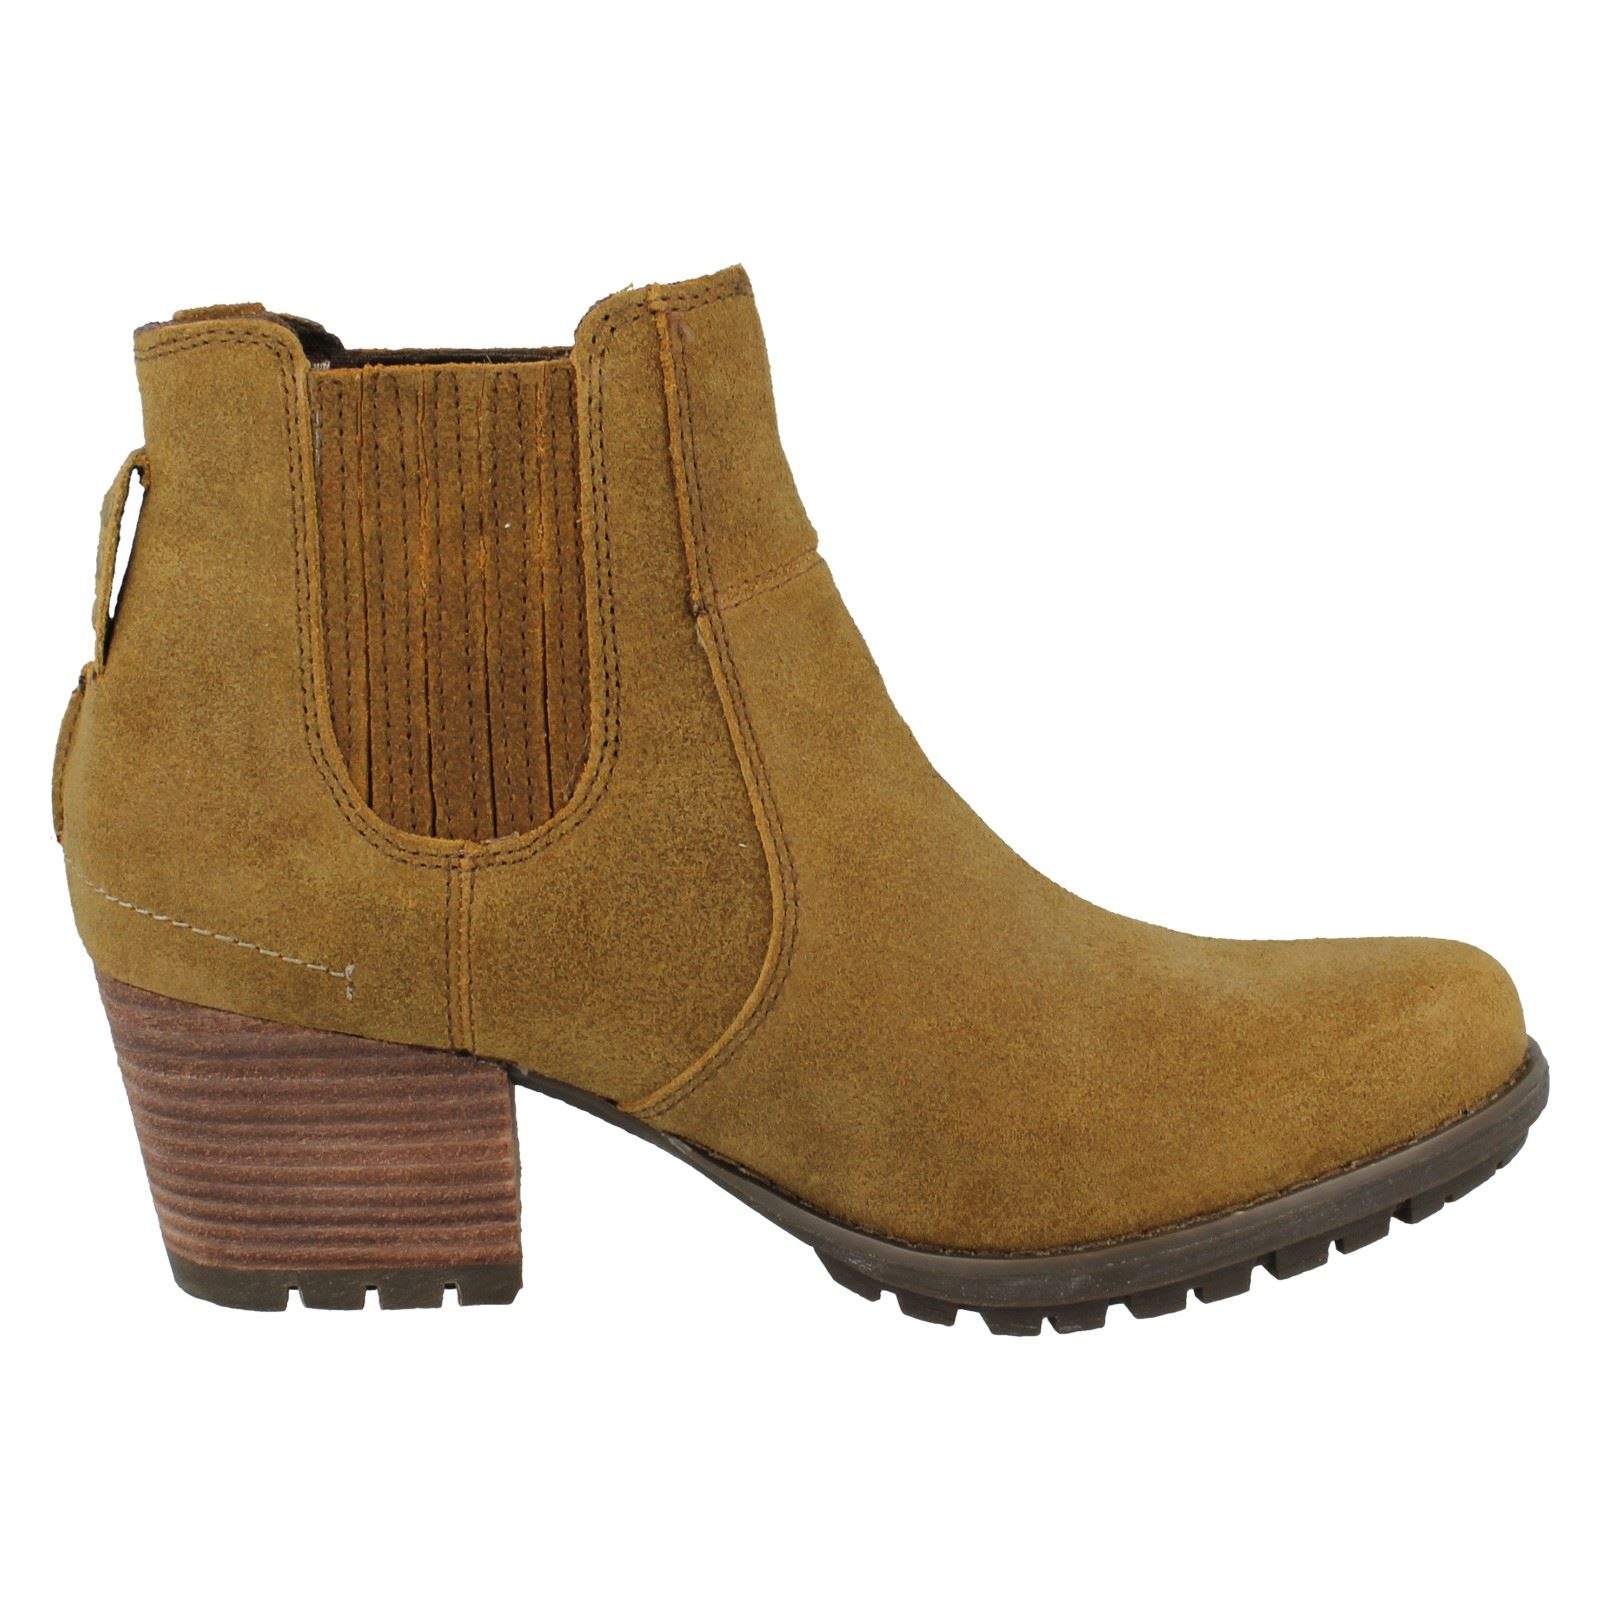 New Caterpillar Cat Willow Womens Leather Boots Ladies Size UK 38  EBay